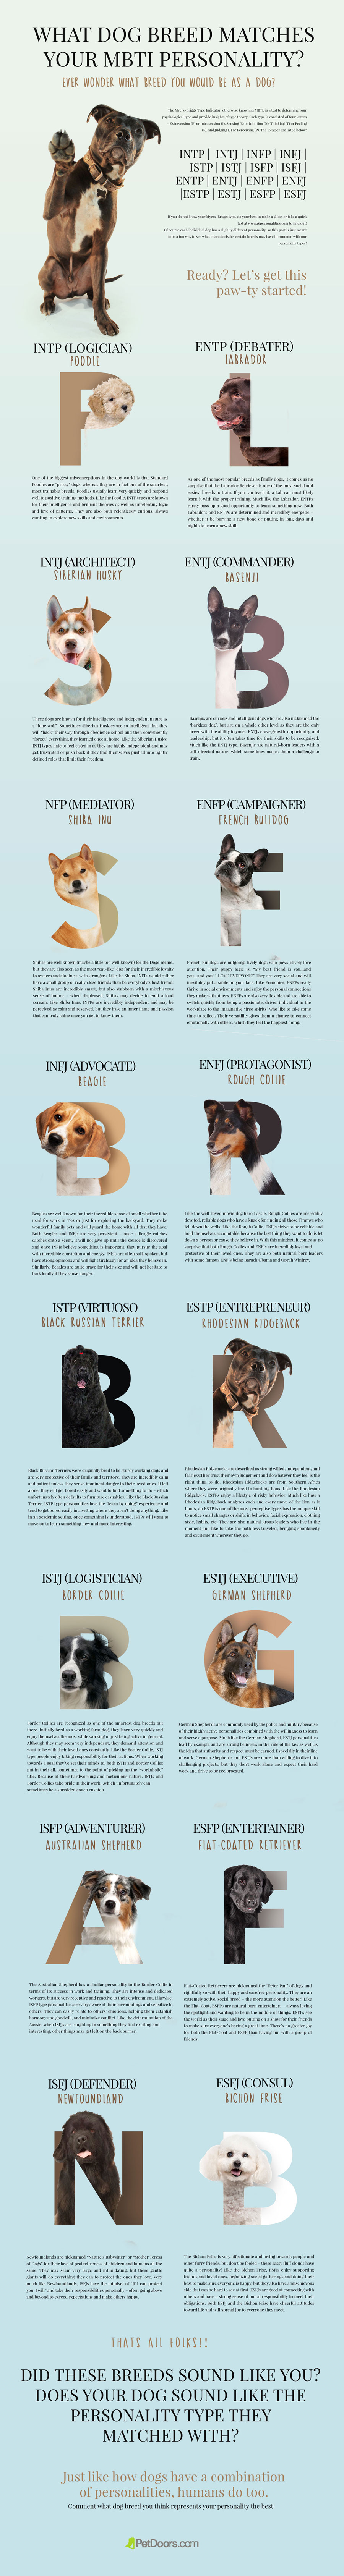 PetDoor_MBTI_Test-infographic-plaza